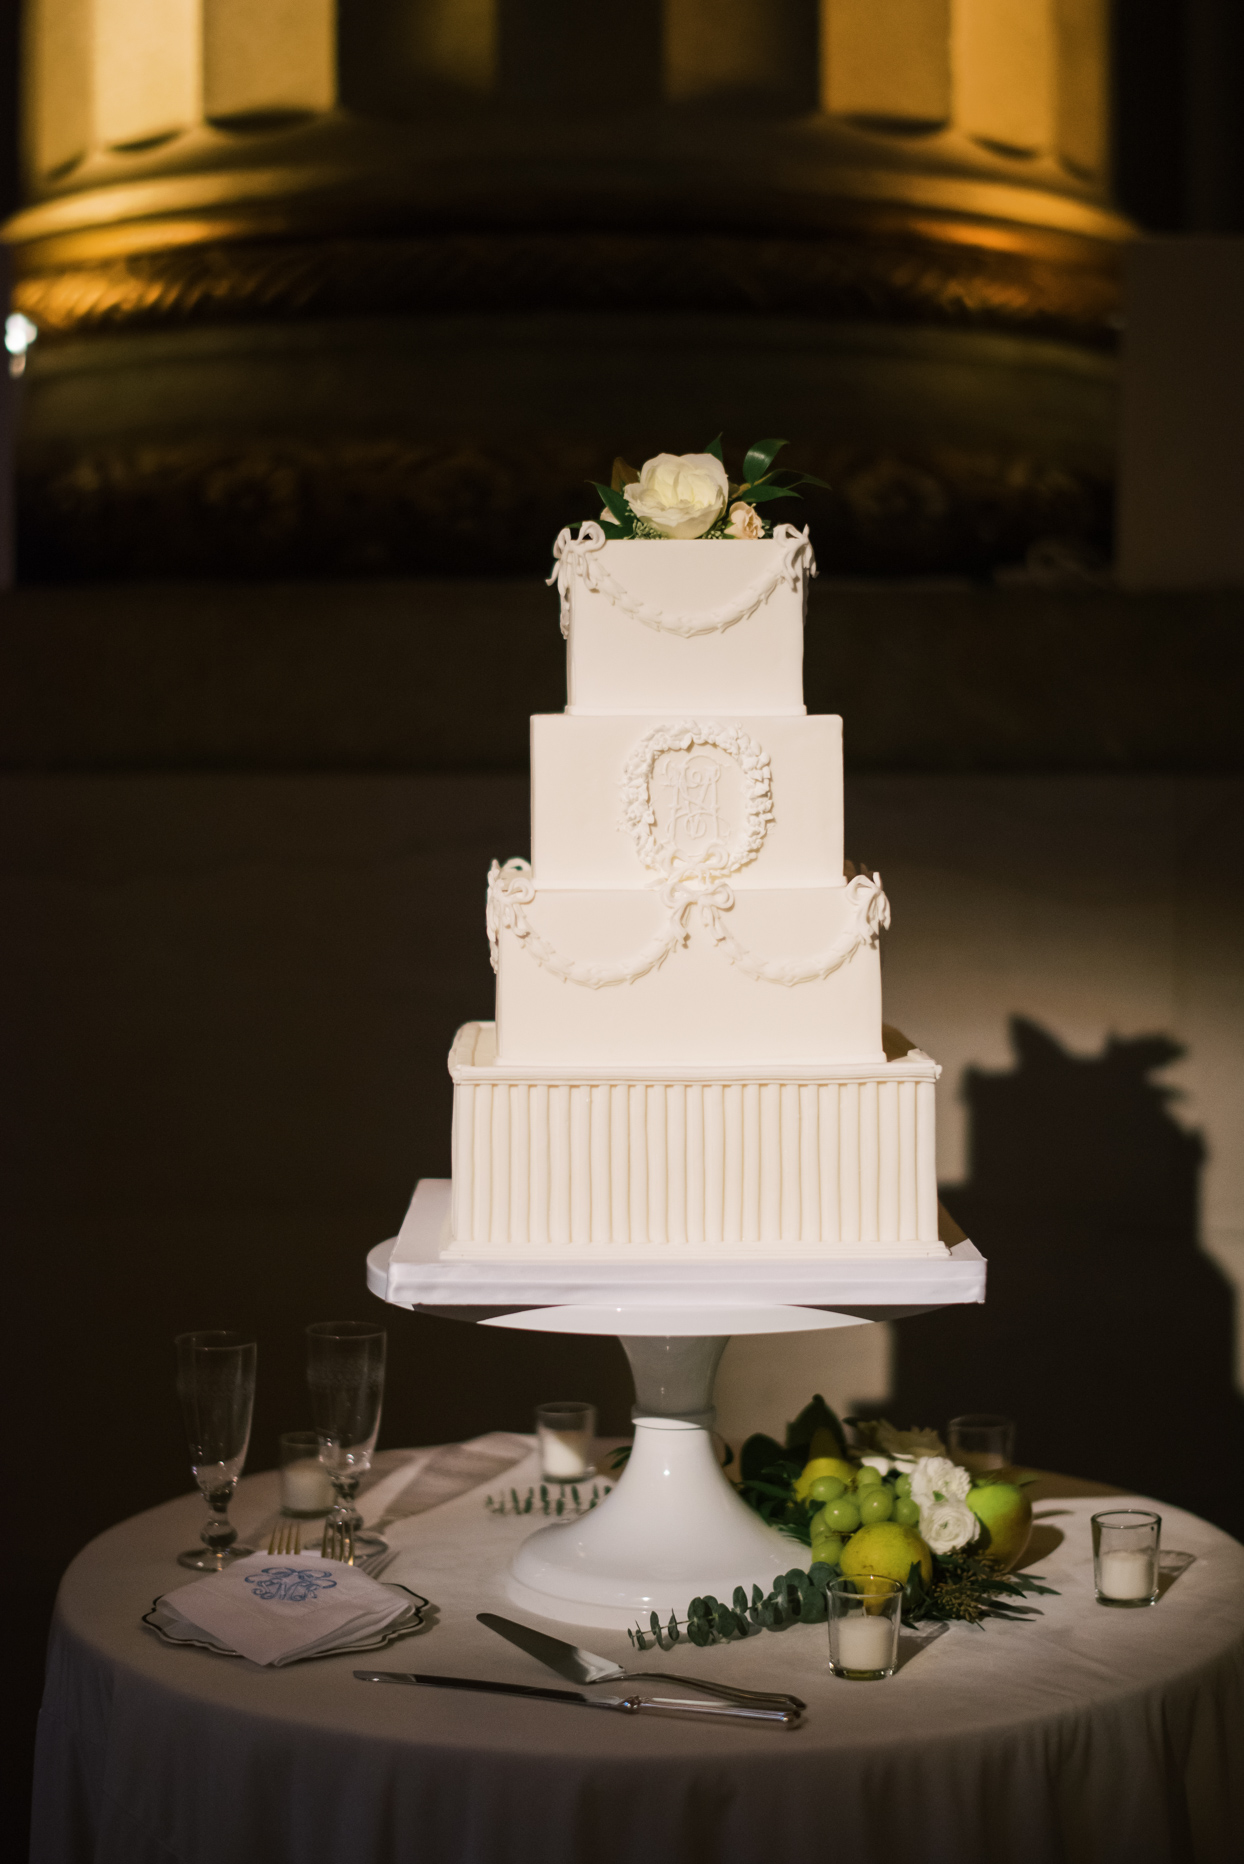 four-tiered white wedding cake on round table